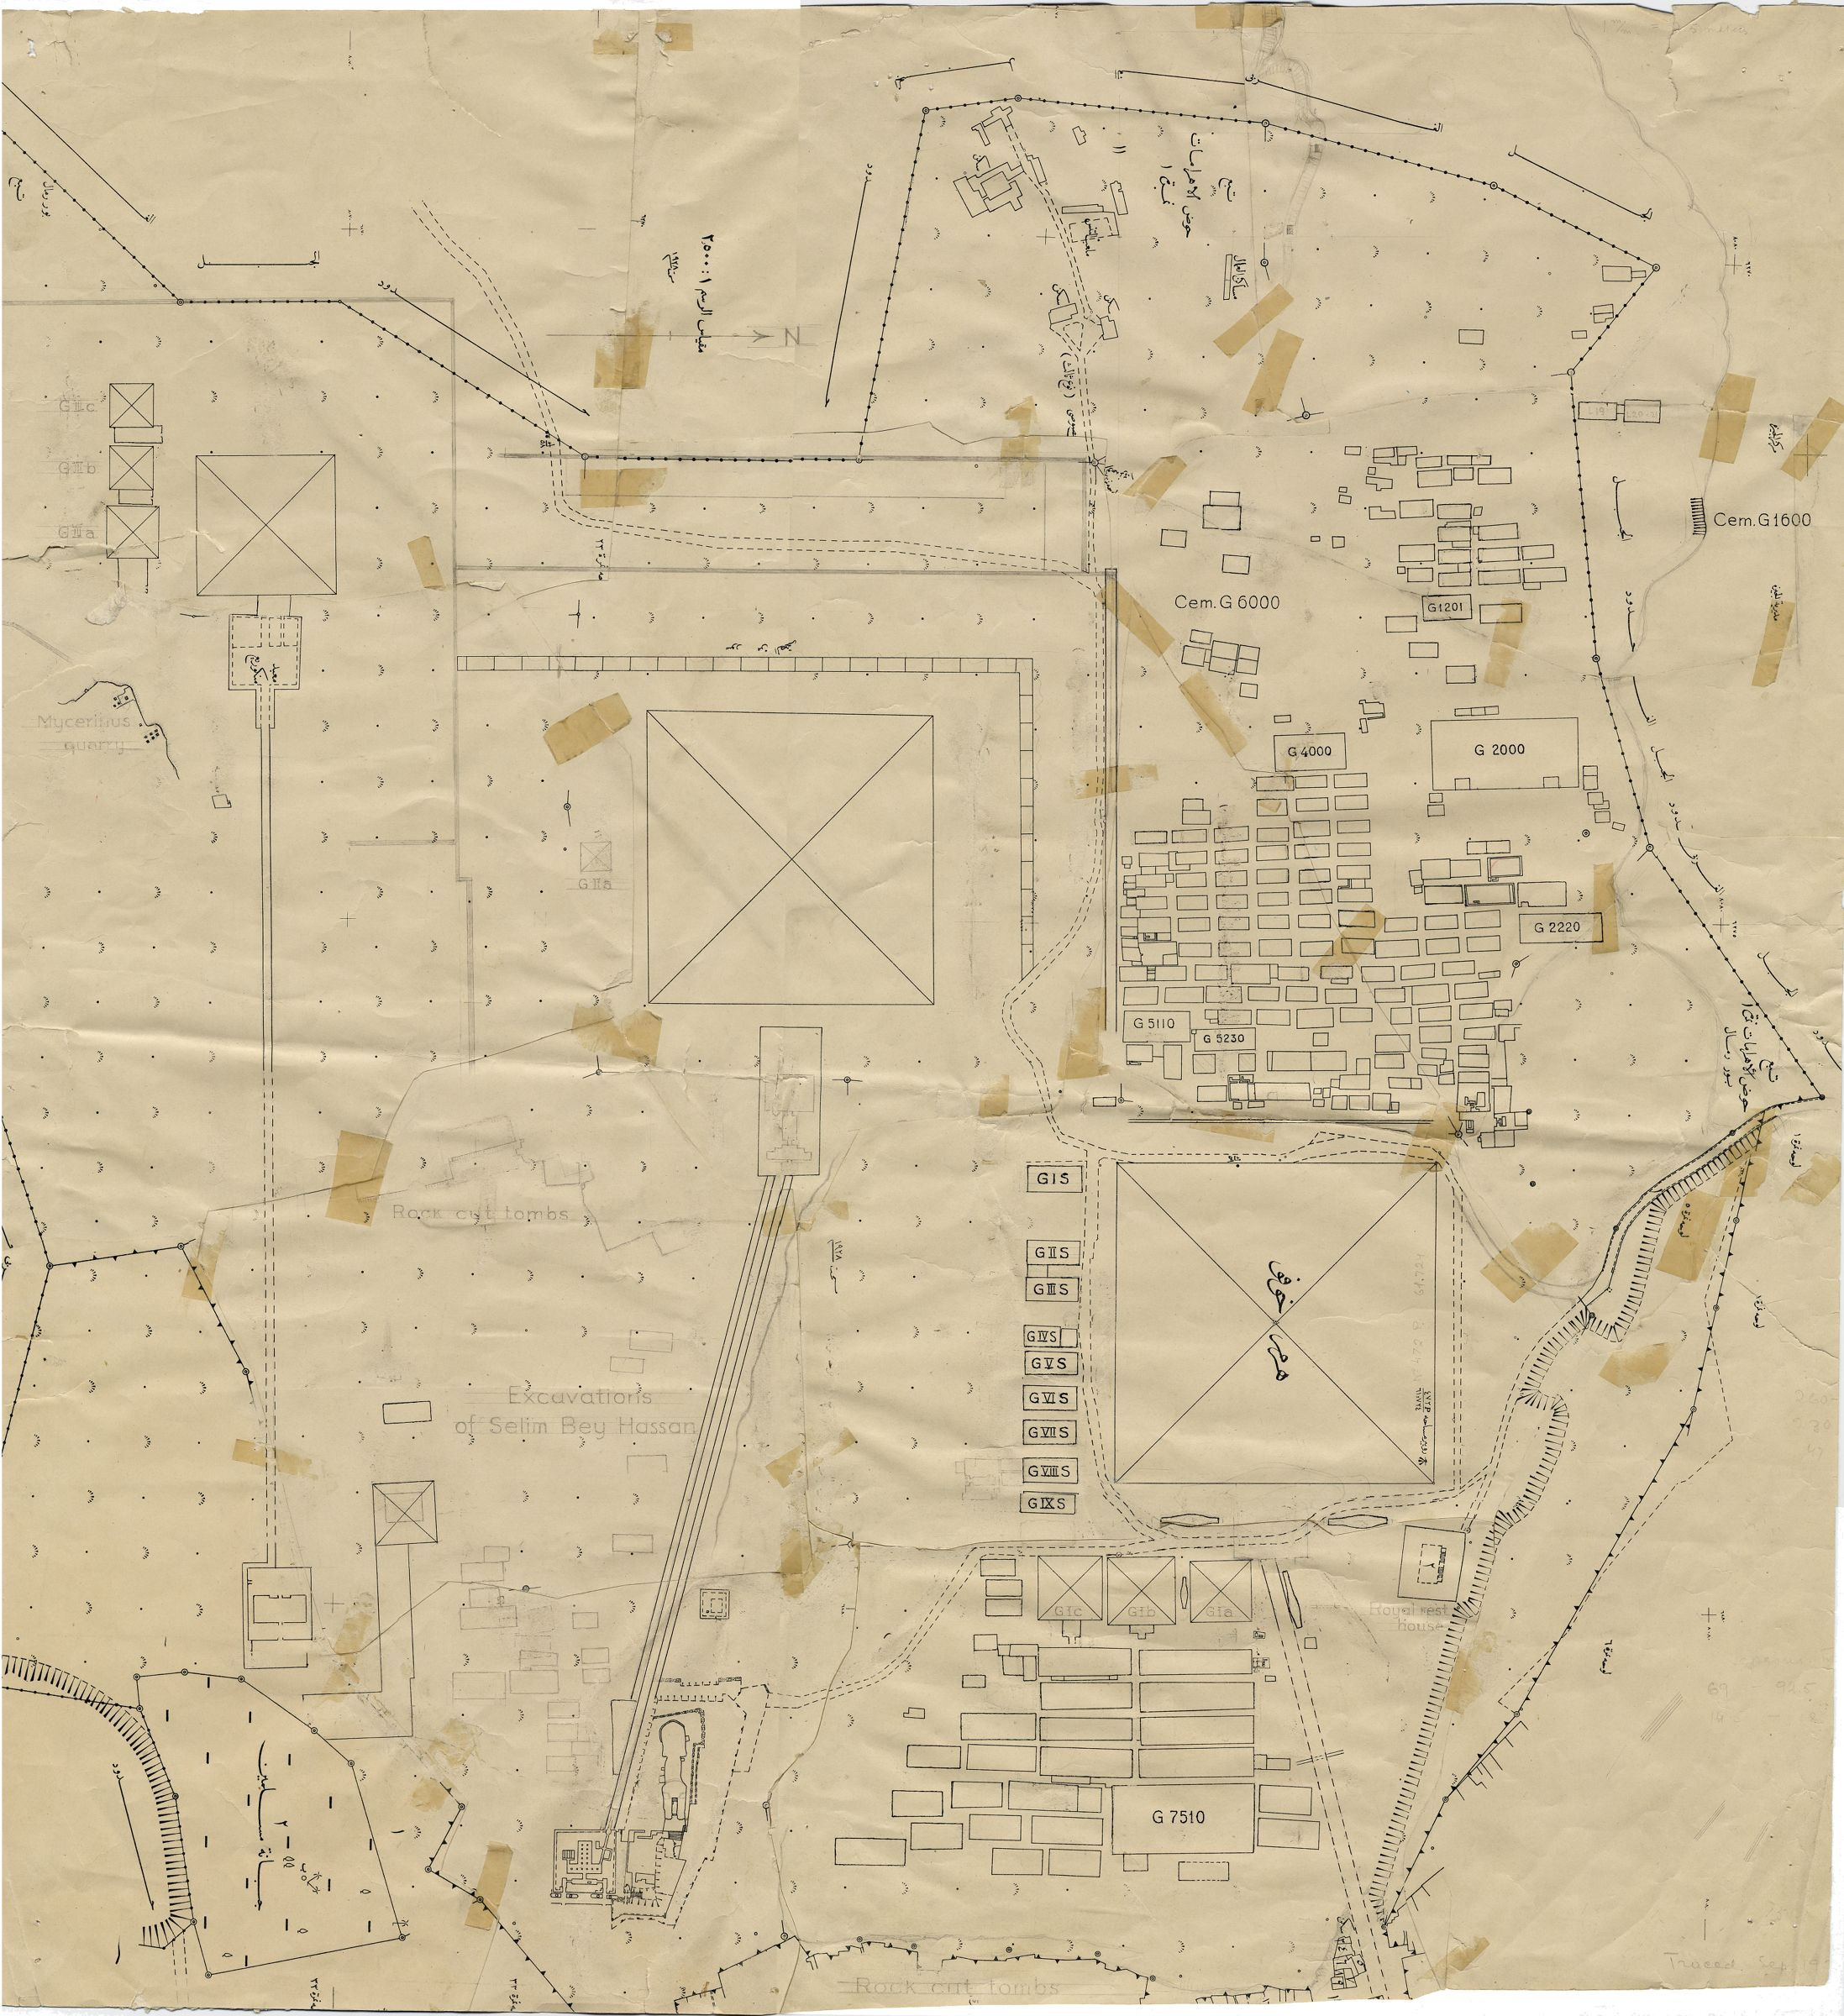 Maps and plans: Plan of the Giza Necropolis